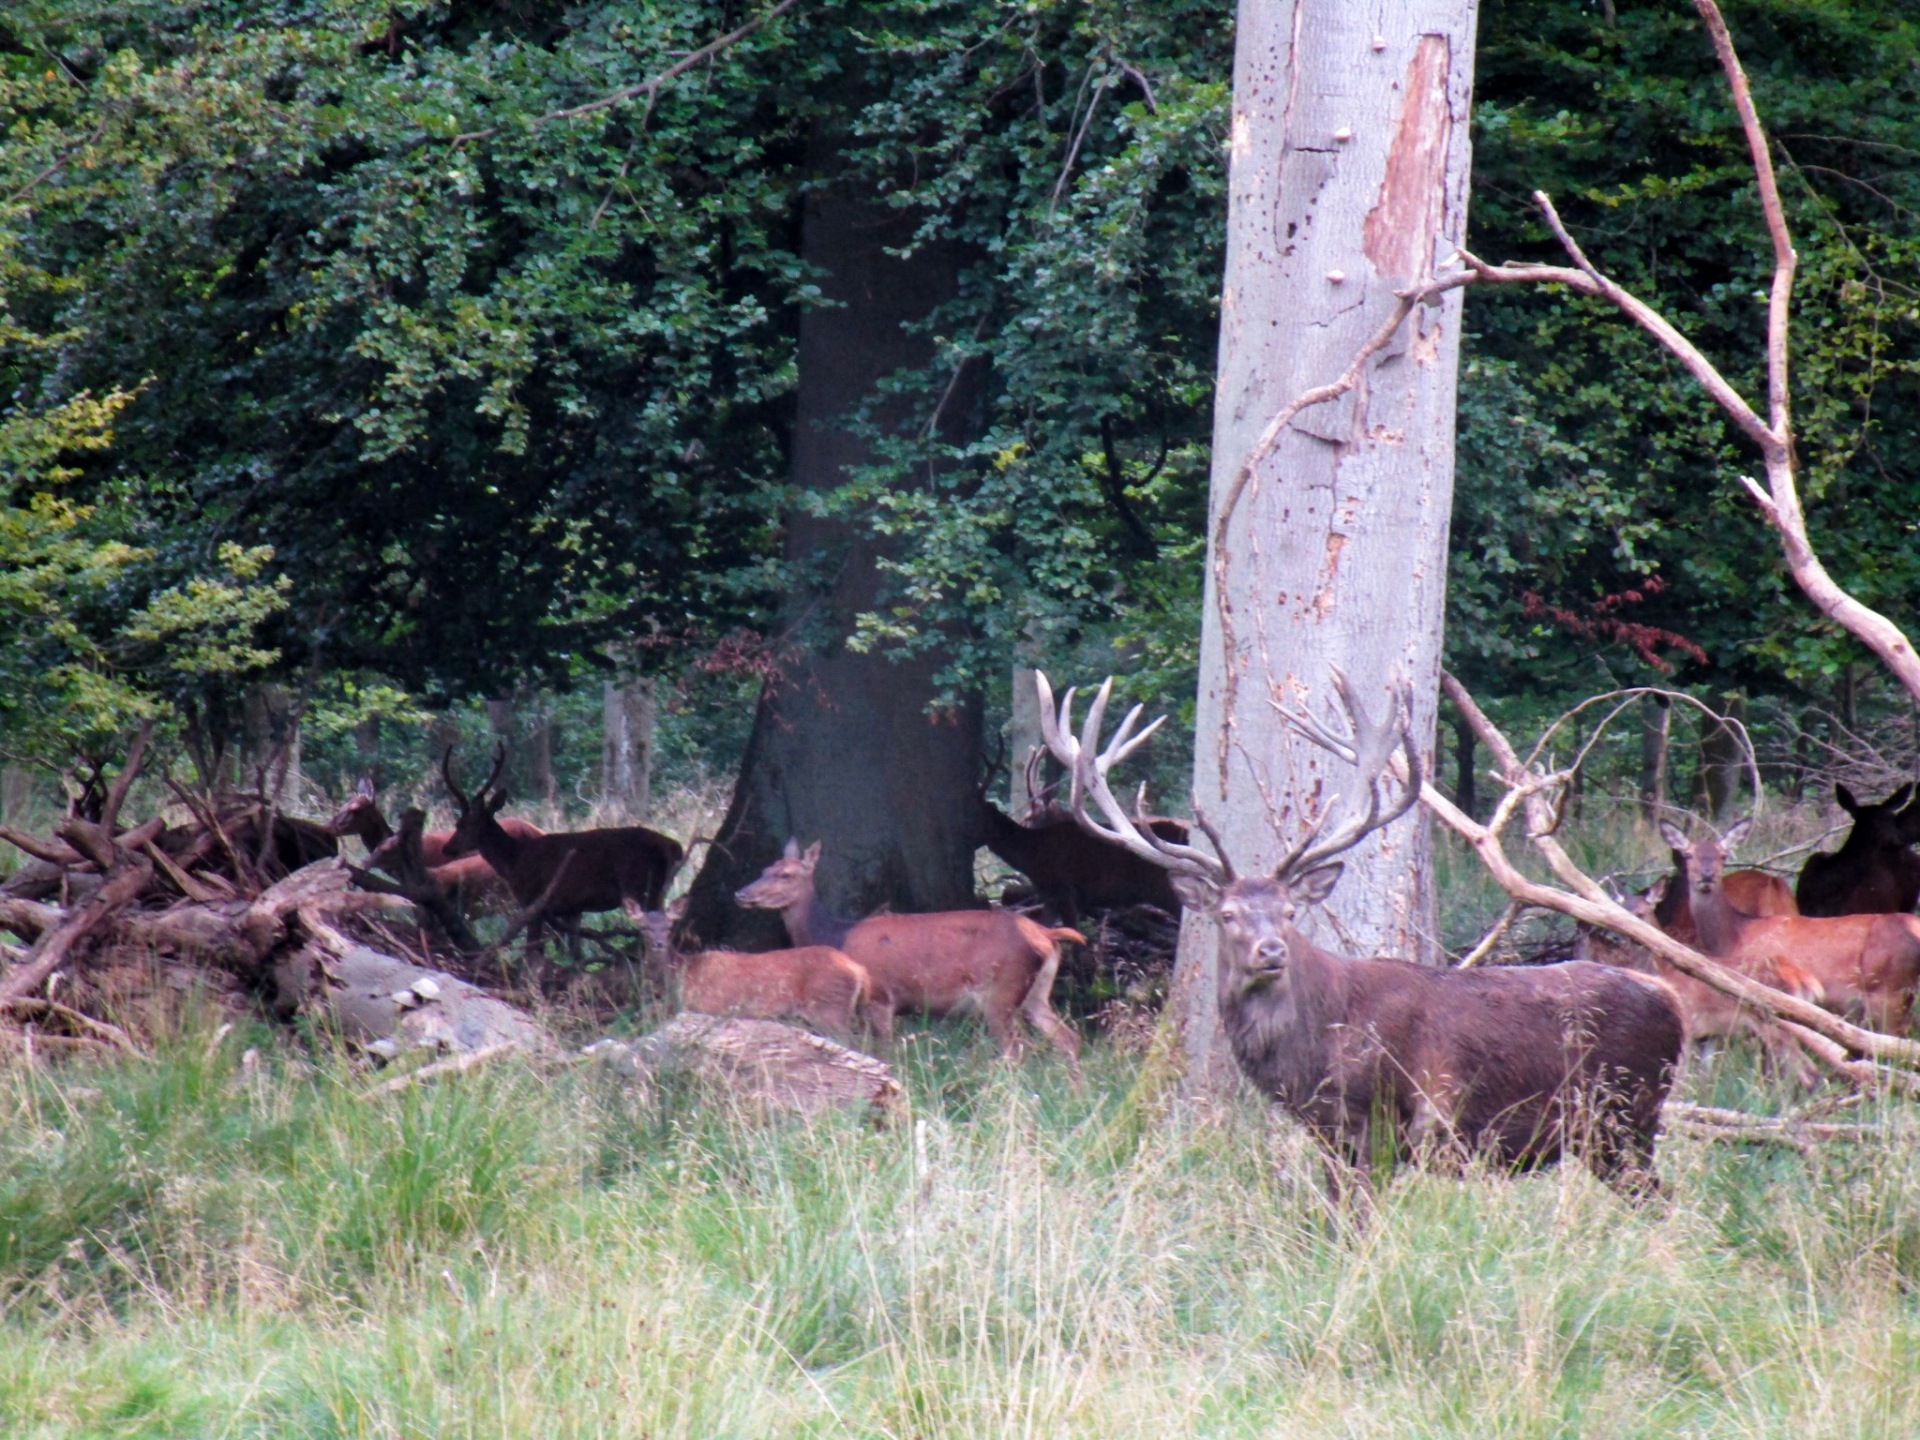 A large stag